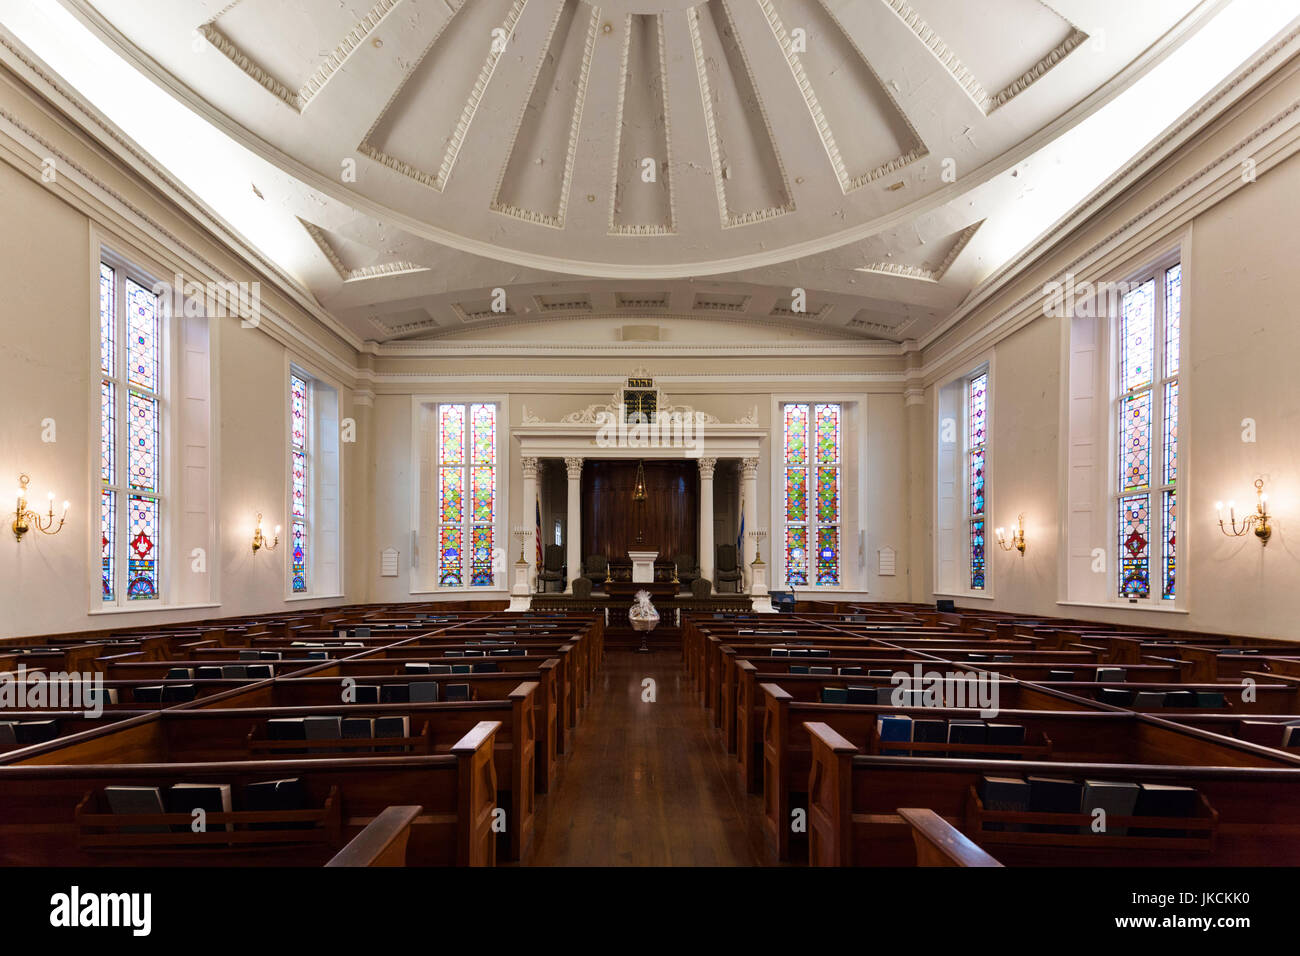 USA, South Carolina, Charleston, Kahal Kadosh Beth Elohim Synagogue, oldest continuously used synagogue in the USA, Stock Photo